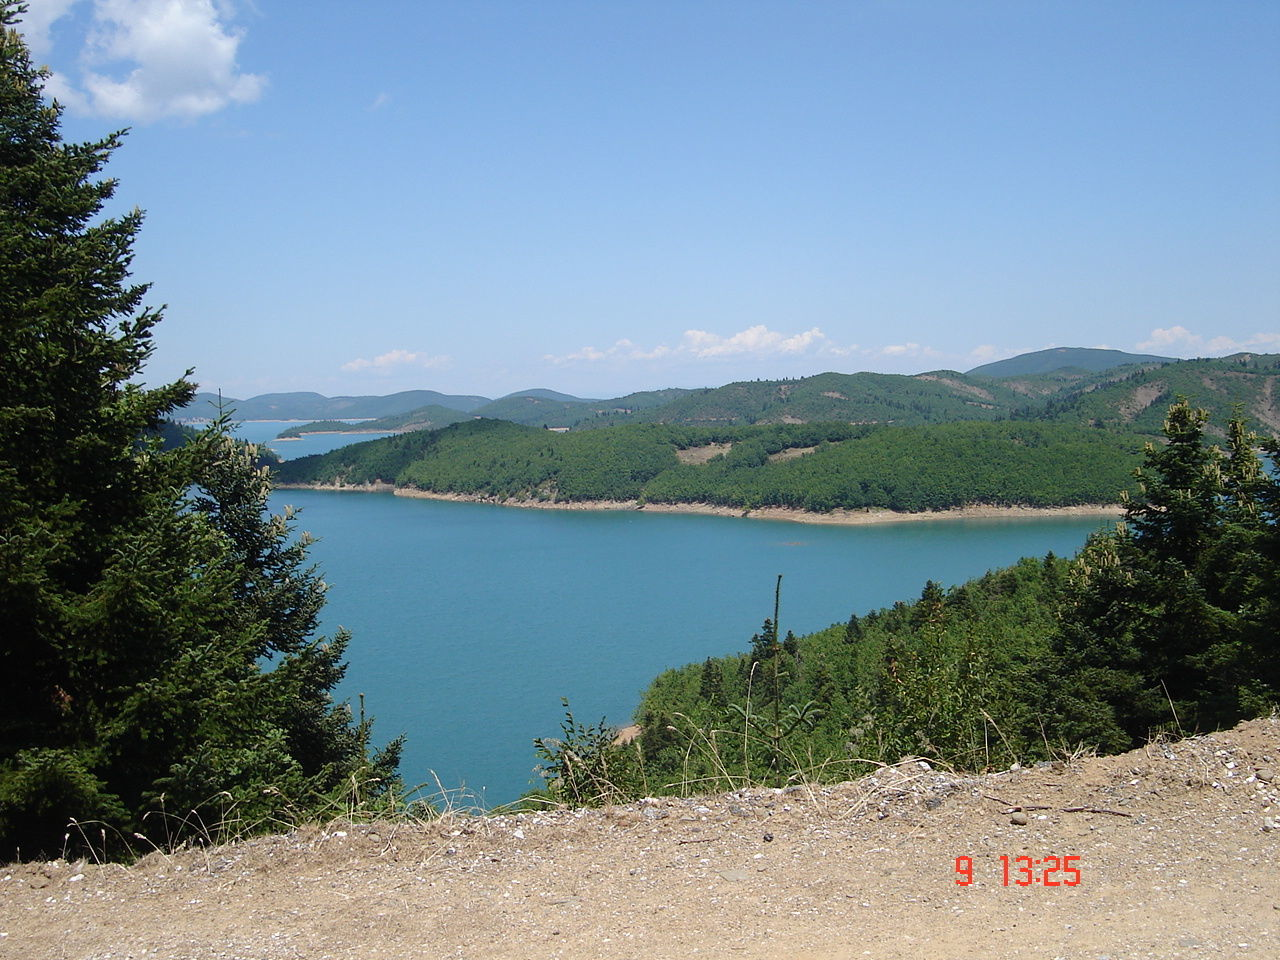 Lake Landscape Mountain Water Nature Tree Mountain Range Sky Outdoors Forest No People Day Plastira Lake, Karditsa Karditsa Greece Karditsa  Beauty In Nature Mountain Landscape Mountain View Mountain_collection